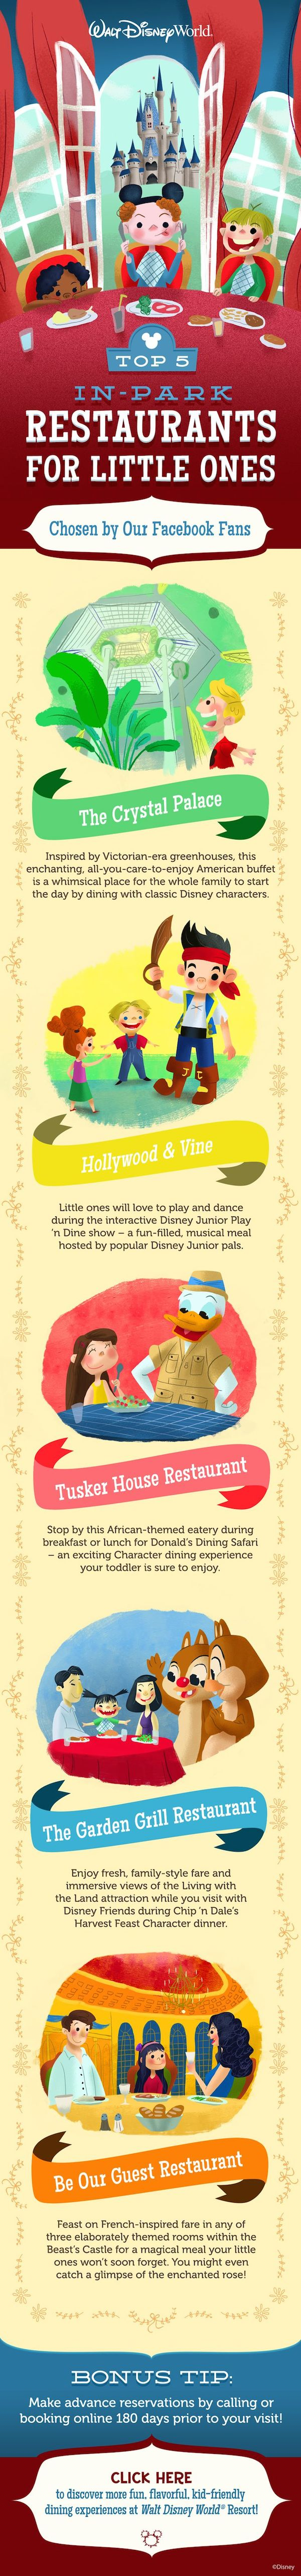 #DisneyKids: Top 5 Restaurants for Little Ones at Walt Disney World Resort